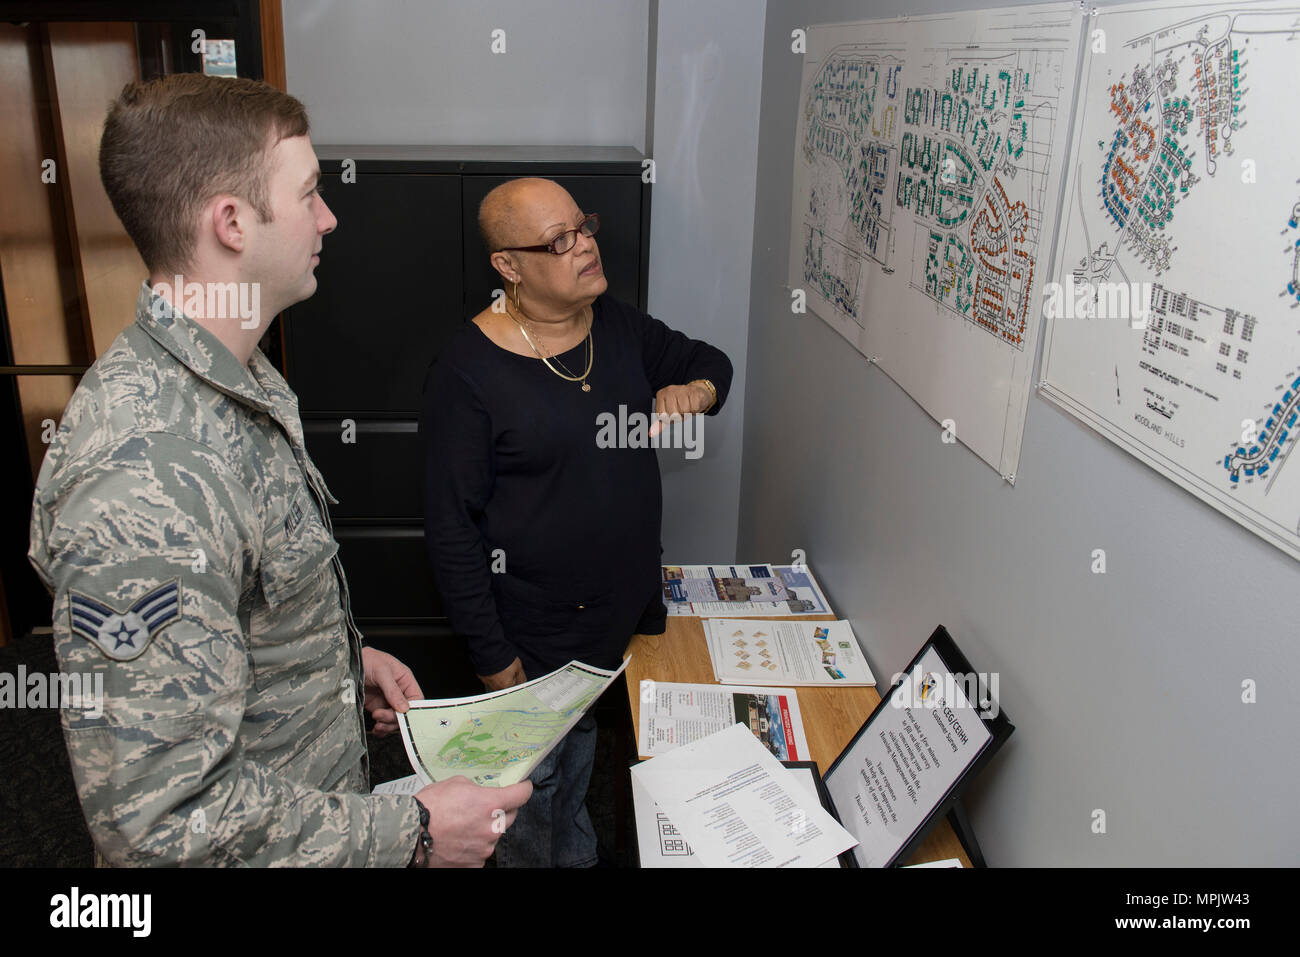 Karen Bryant, 88th Civil Engineering housing privatization manager, shows maps of base housing to Senior Airman Nathan Miller, 88th CE Emergency Management administrator technician, at Wright-Patterson Air Force Base, Ohio, March 15, 2017.  Wright-Patterson privatized housing provides affordable housing on and off base for active duty military service members relocating to a permanent change of station.  (U. S. Air Force photo by Michelle Gigante/Released) - Stock Image